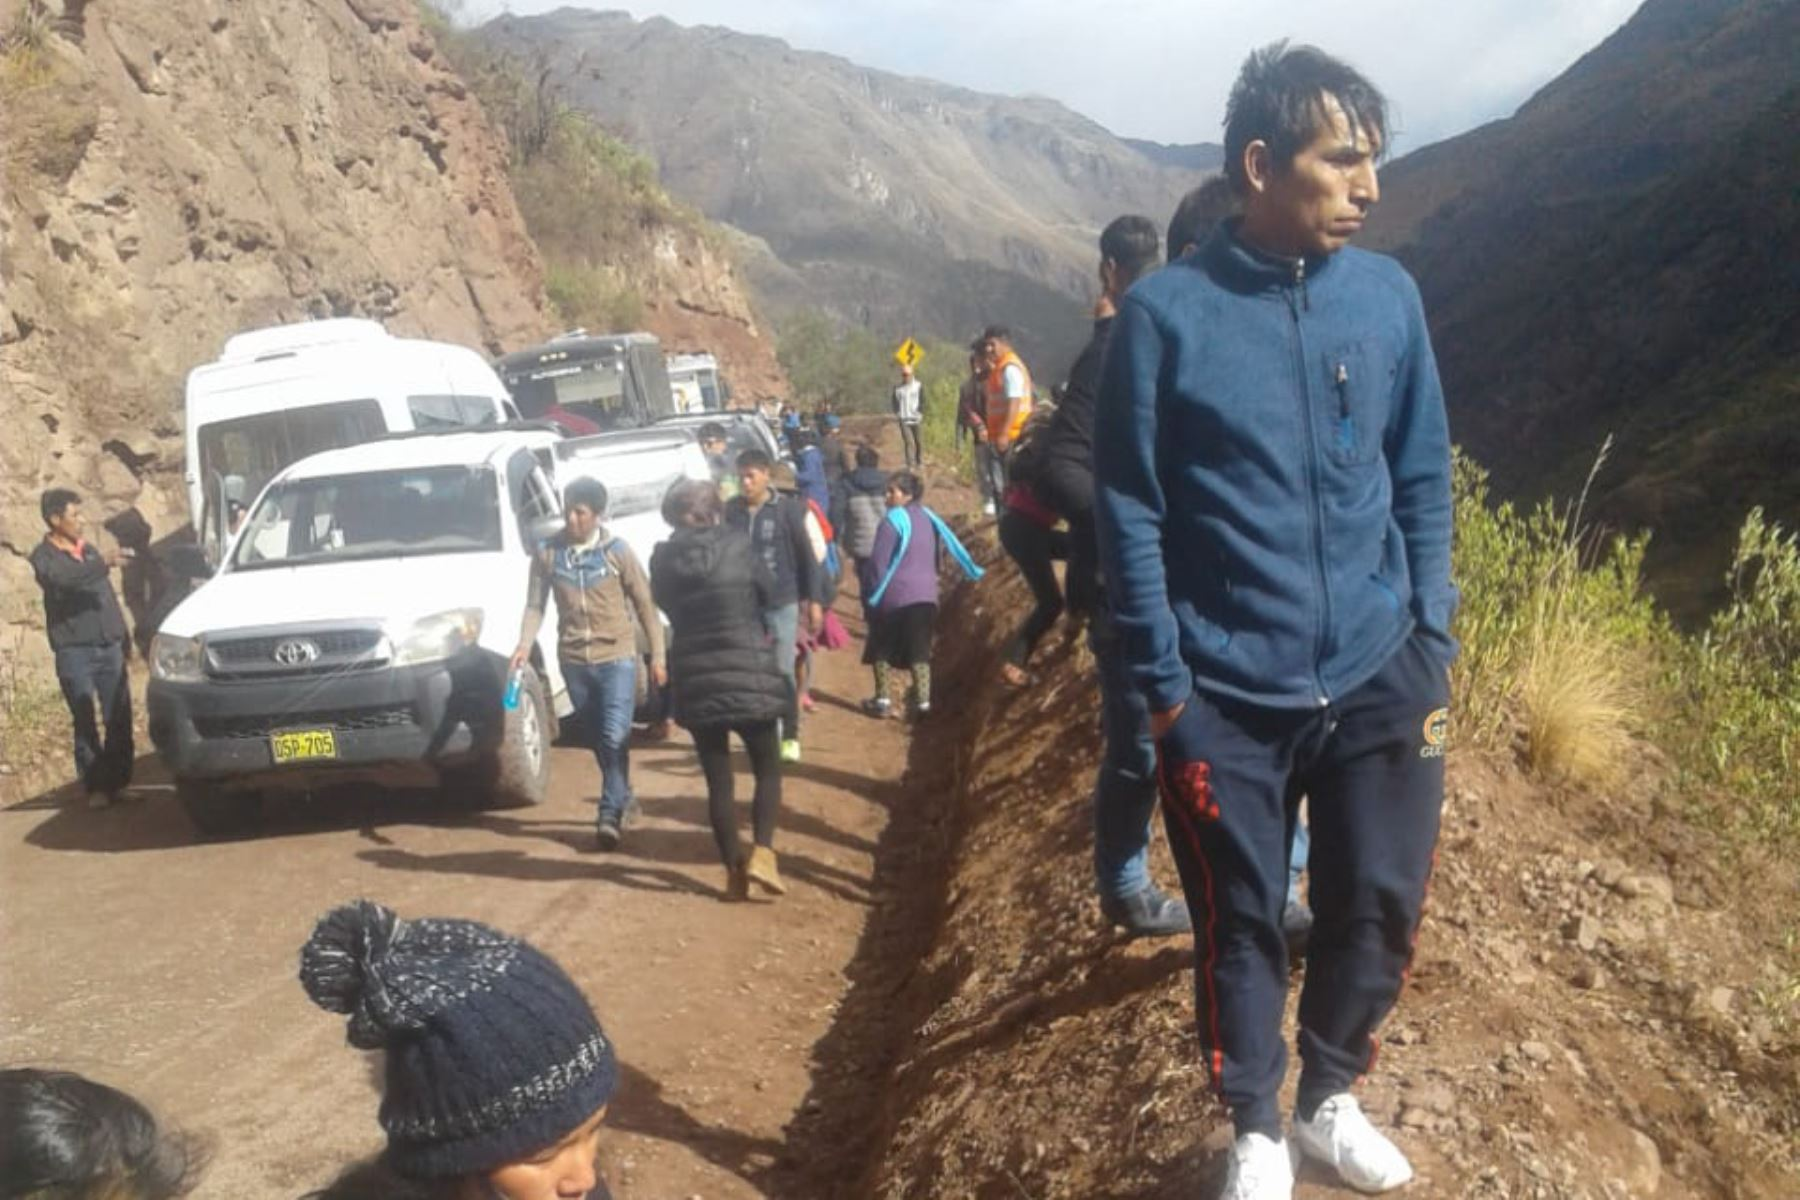 Bus accident in Cusco leaves 23 dead